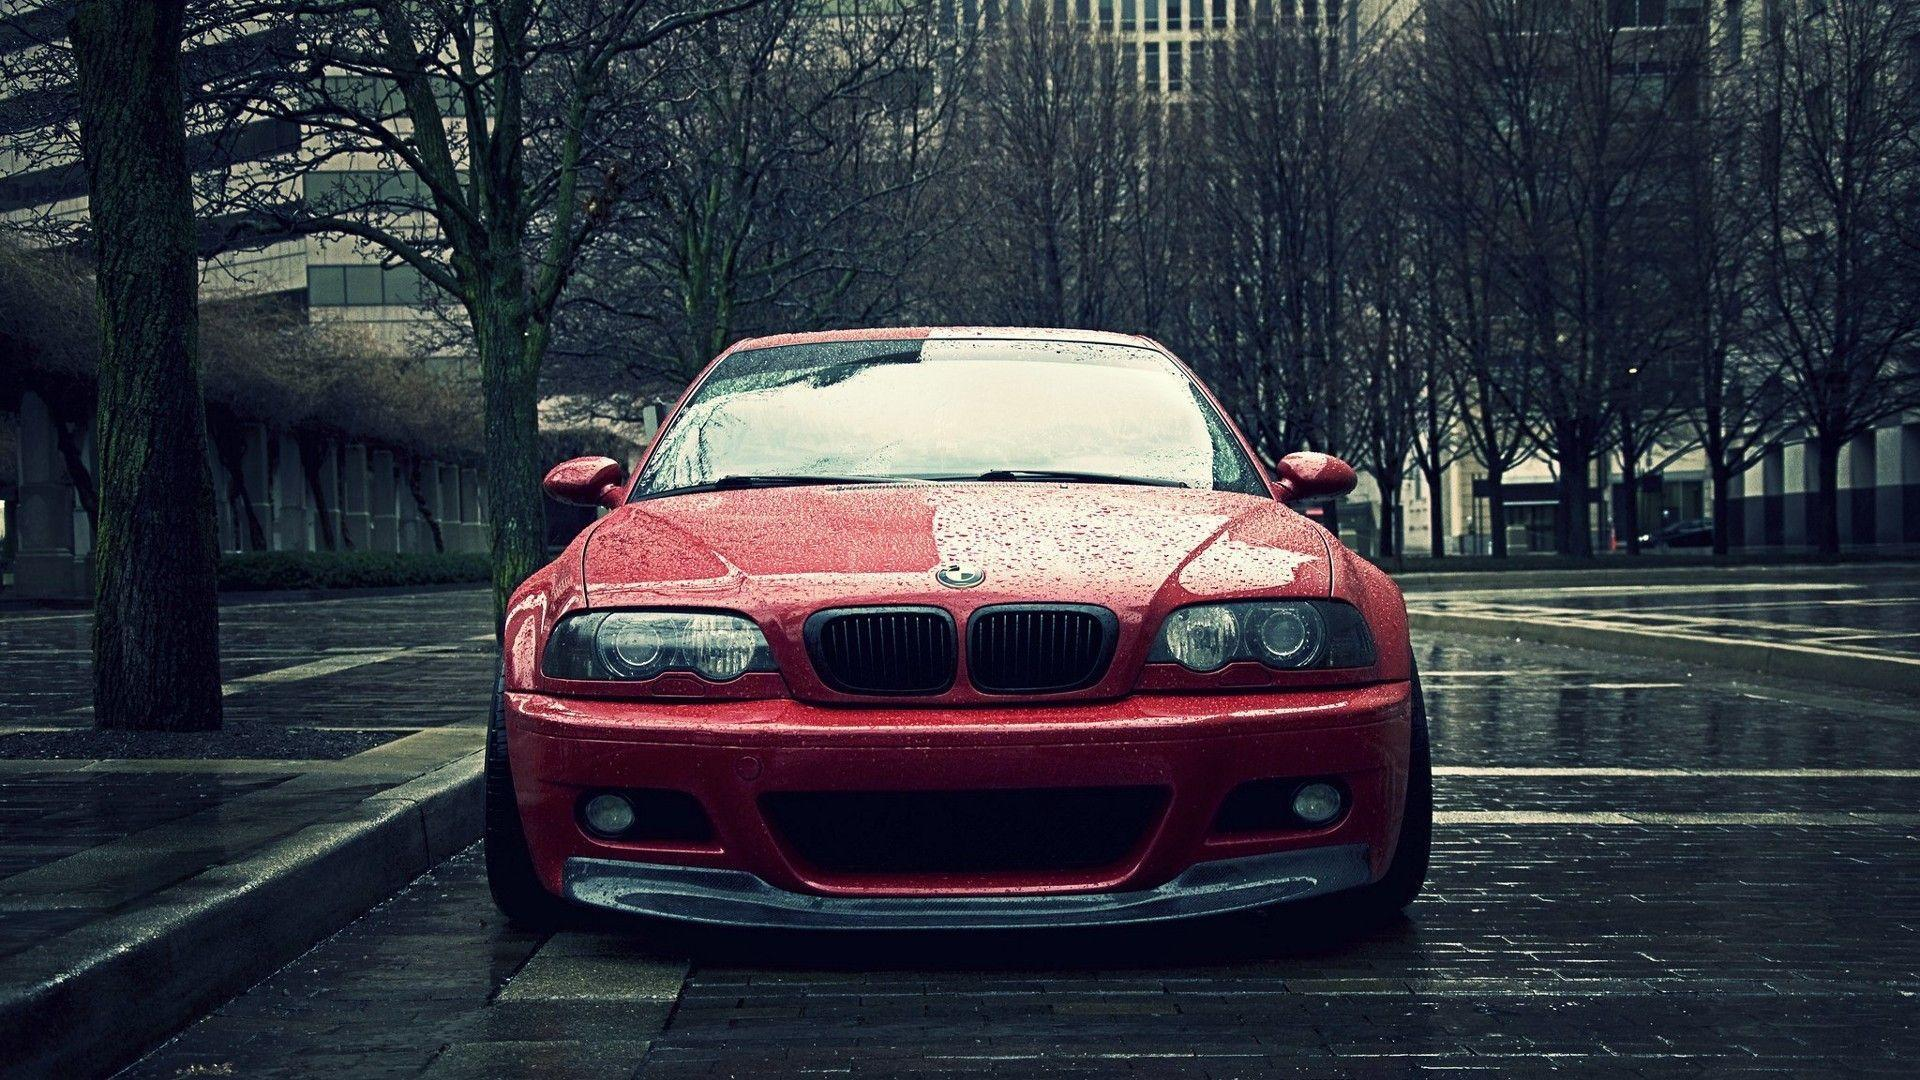 BMW M3 E46 Wallpapers #